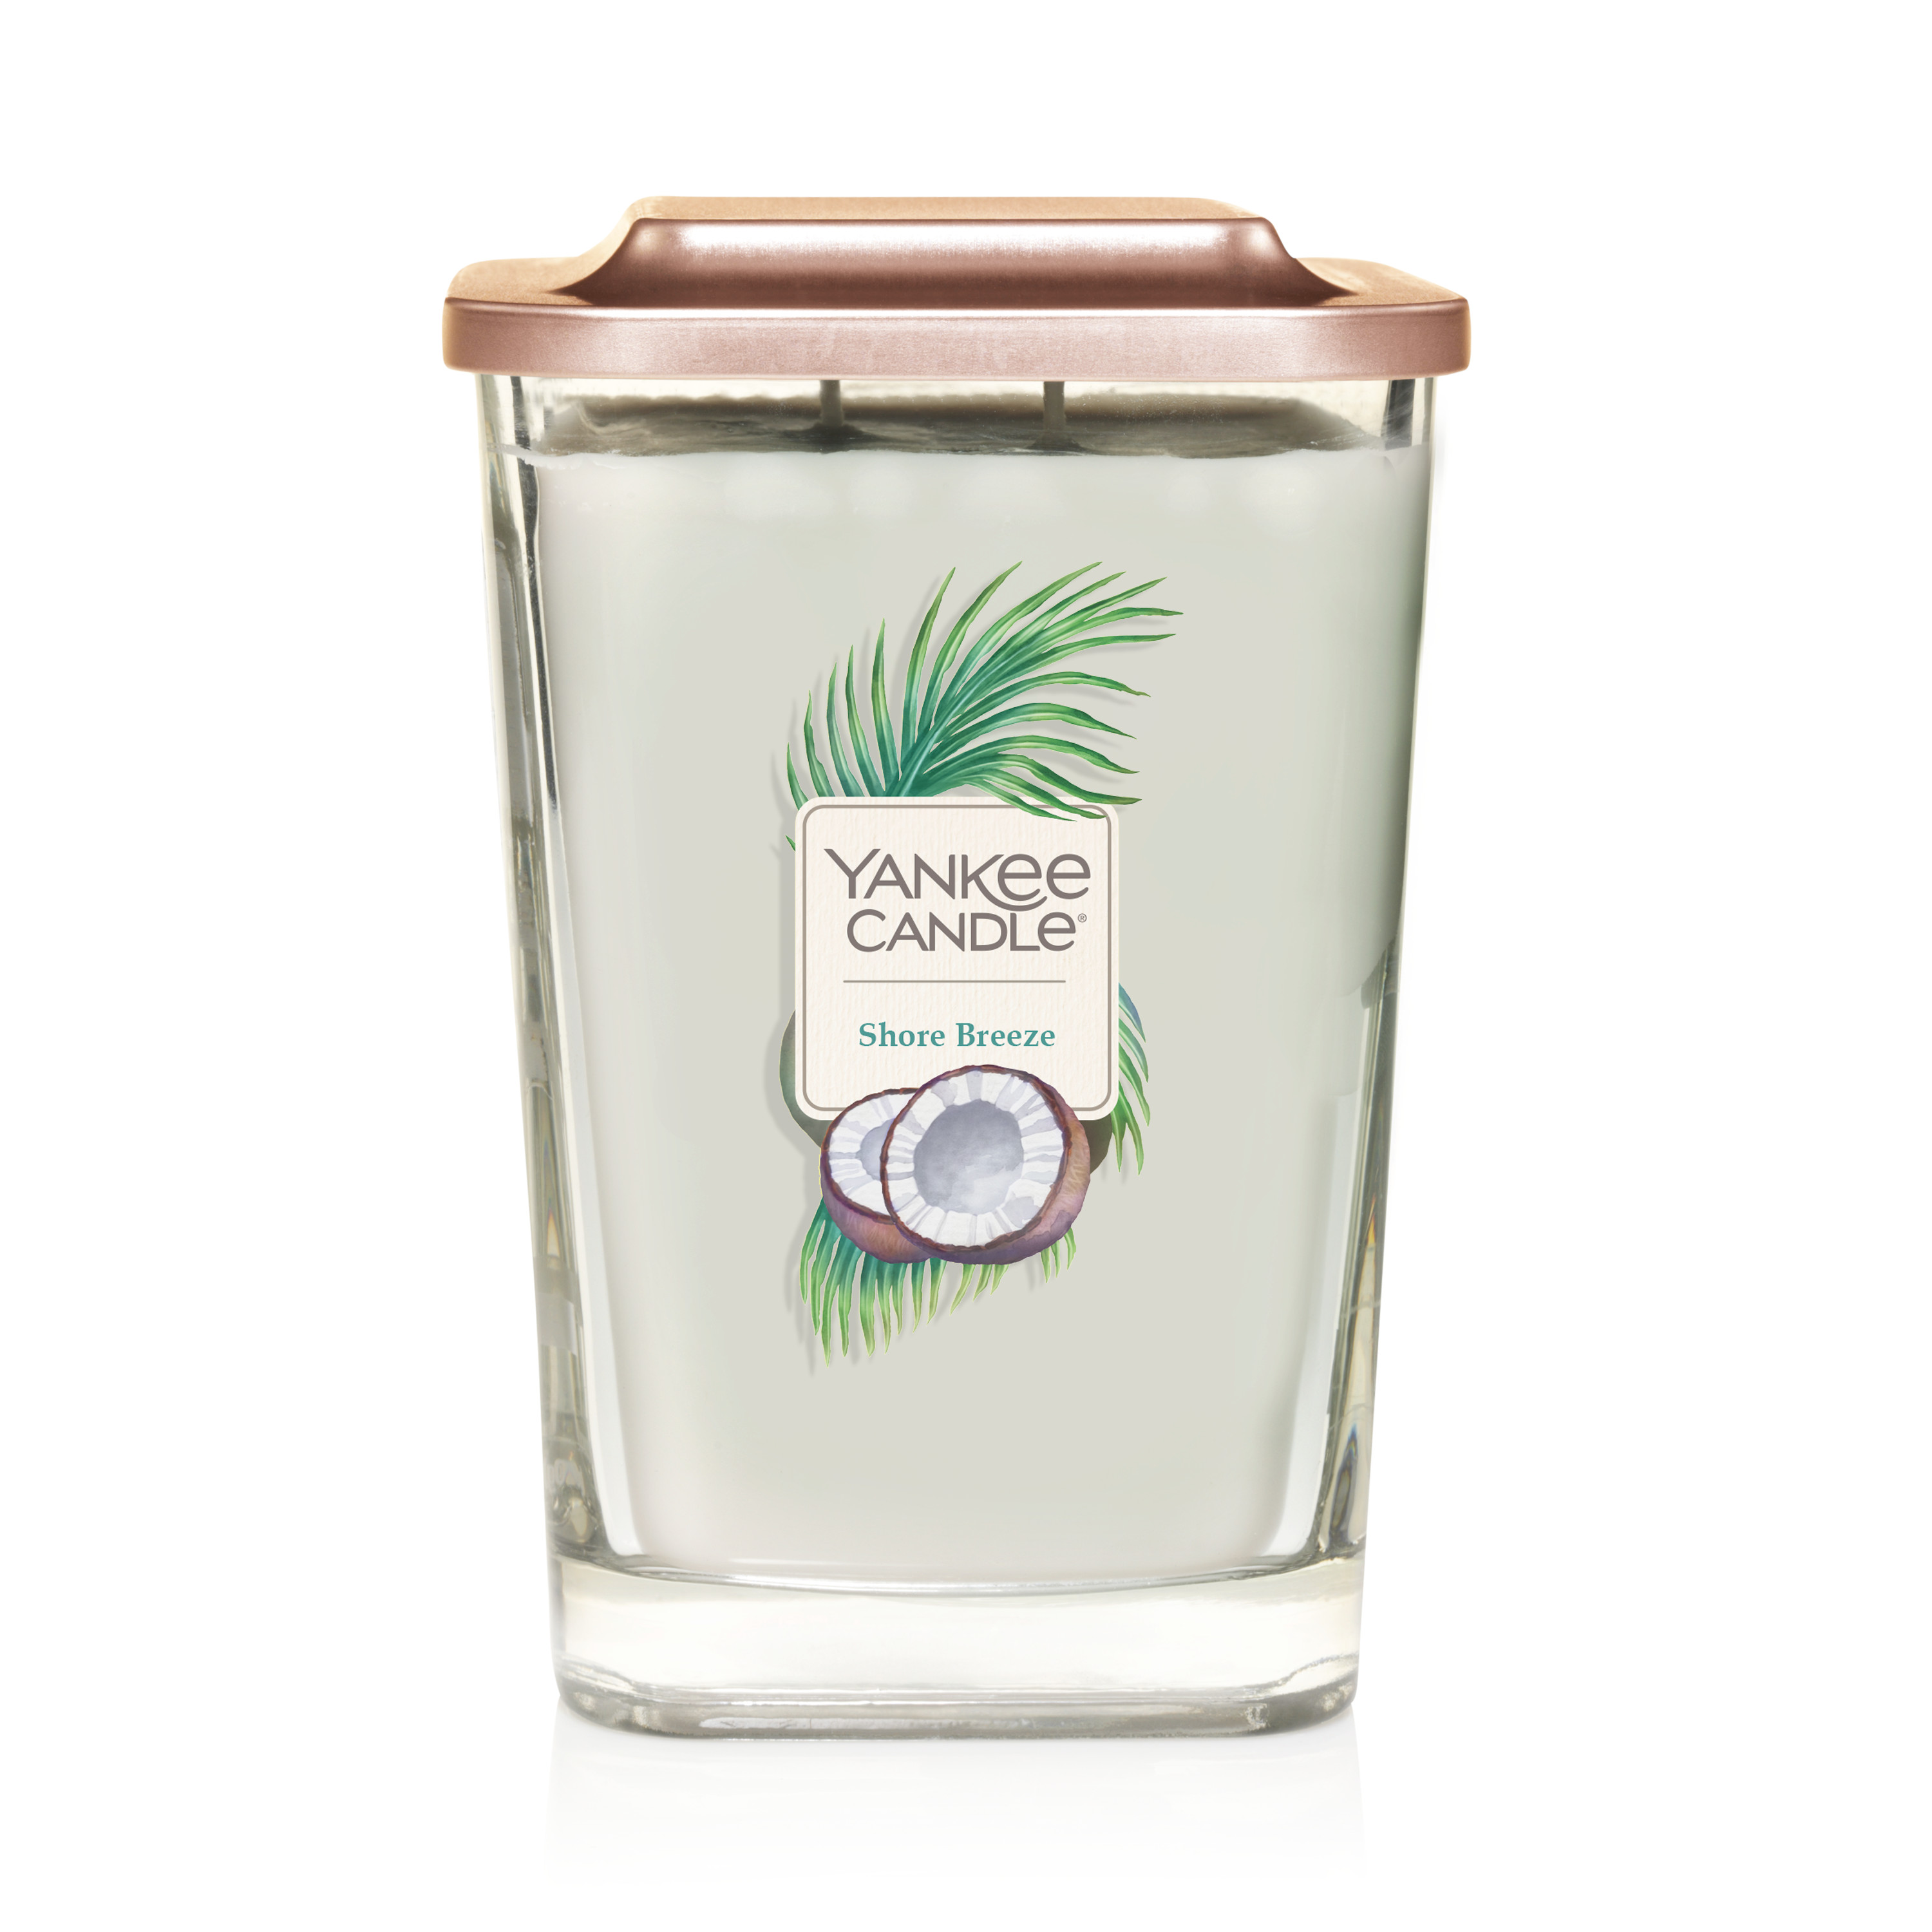 Yankee Candle Elevation Collection with Platform Lid Candle, Shore Breeze